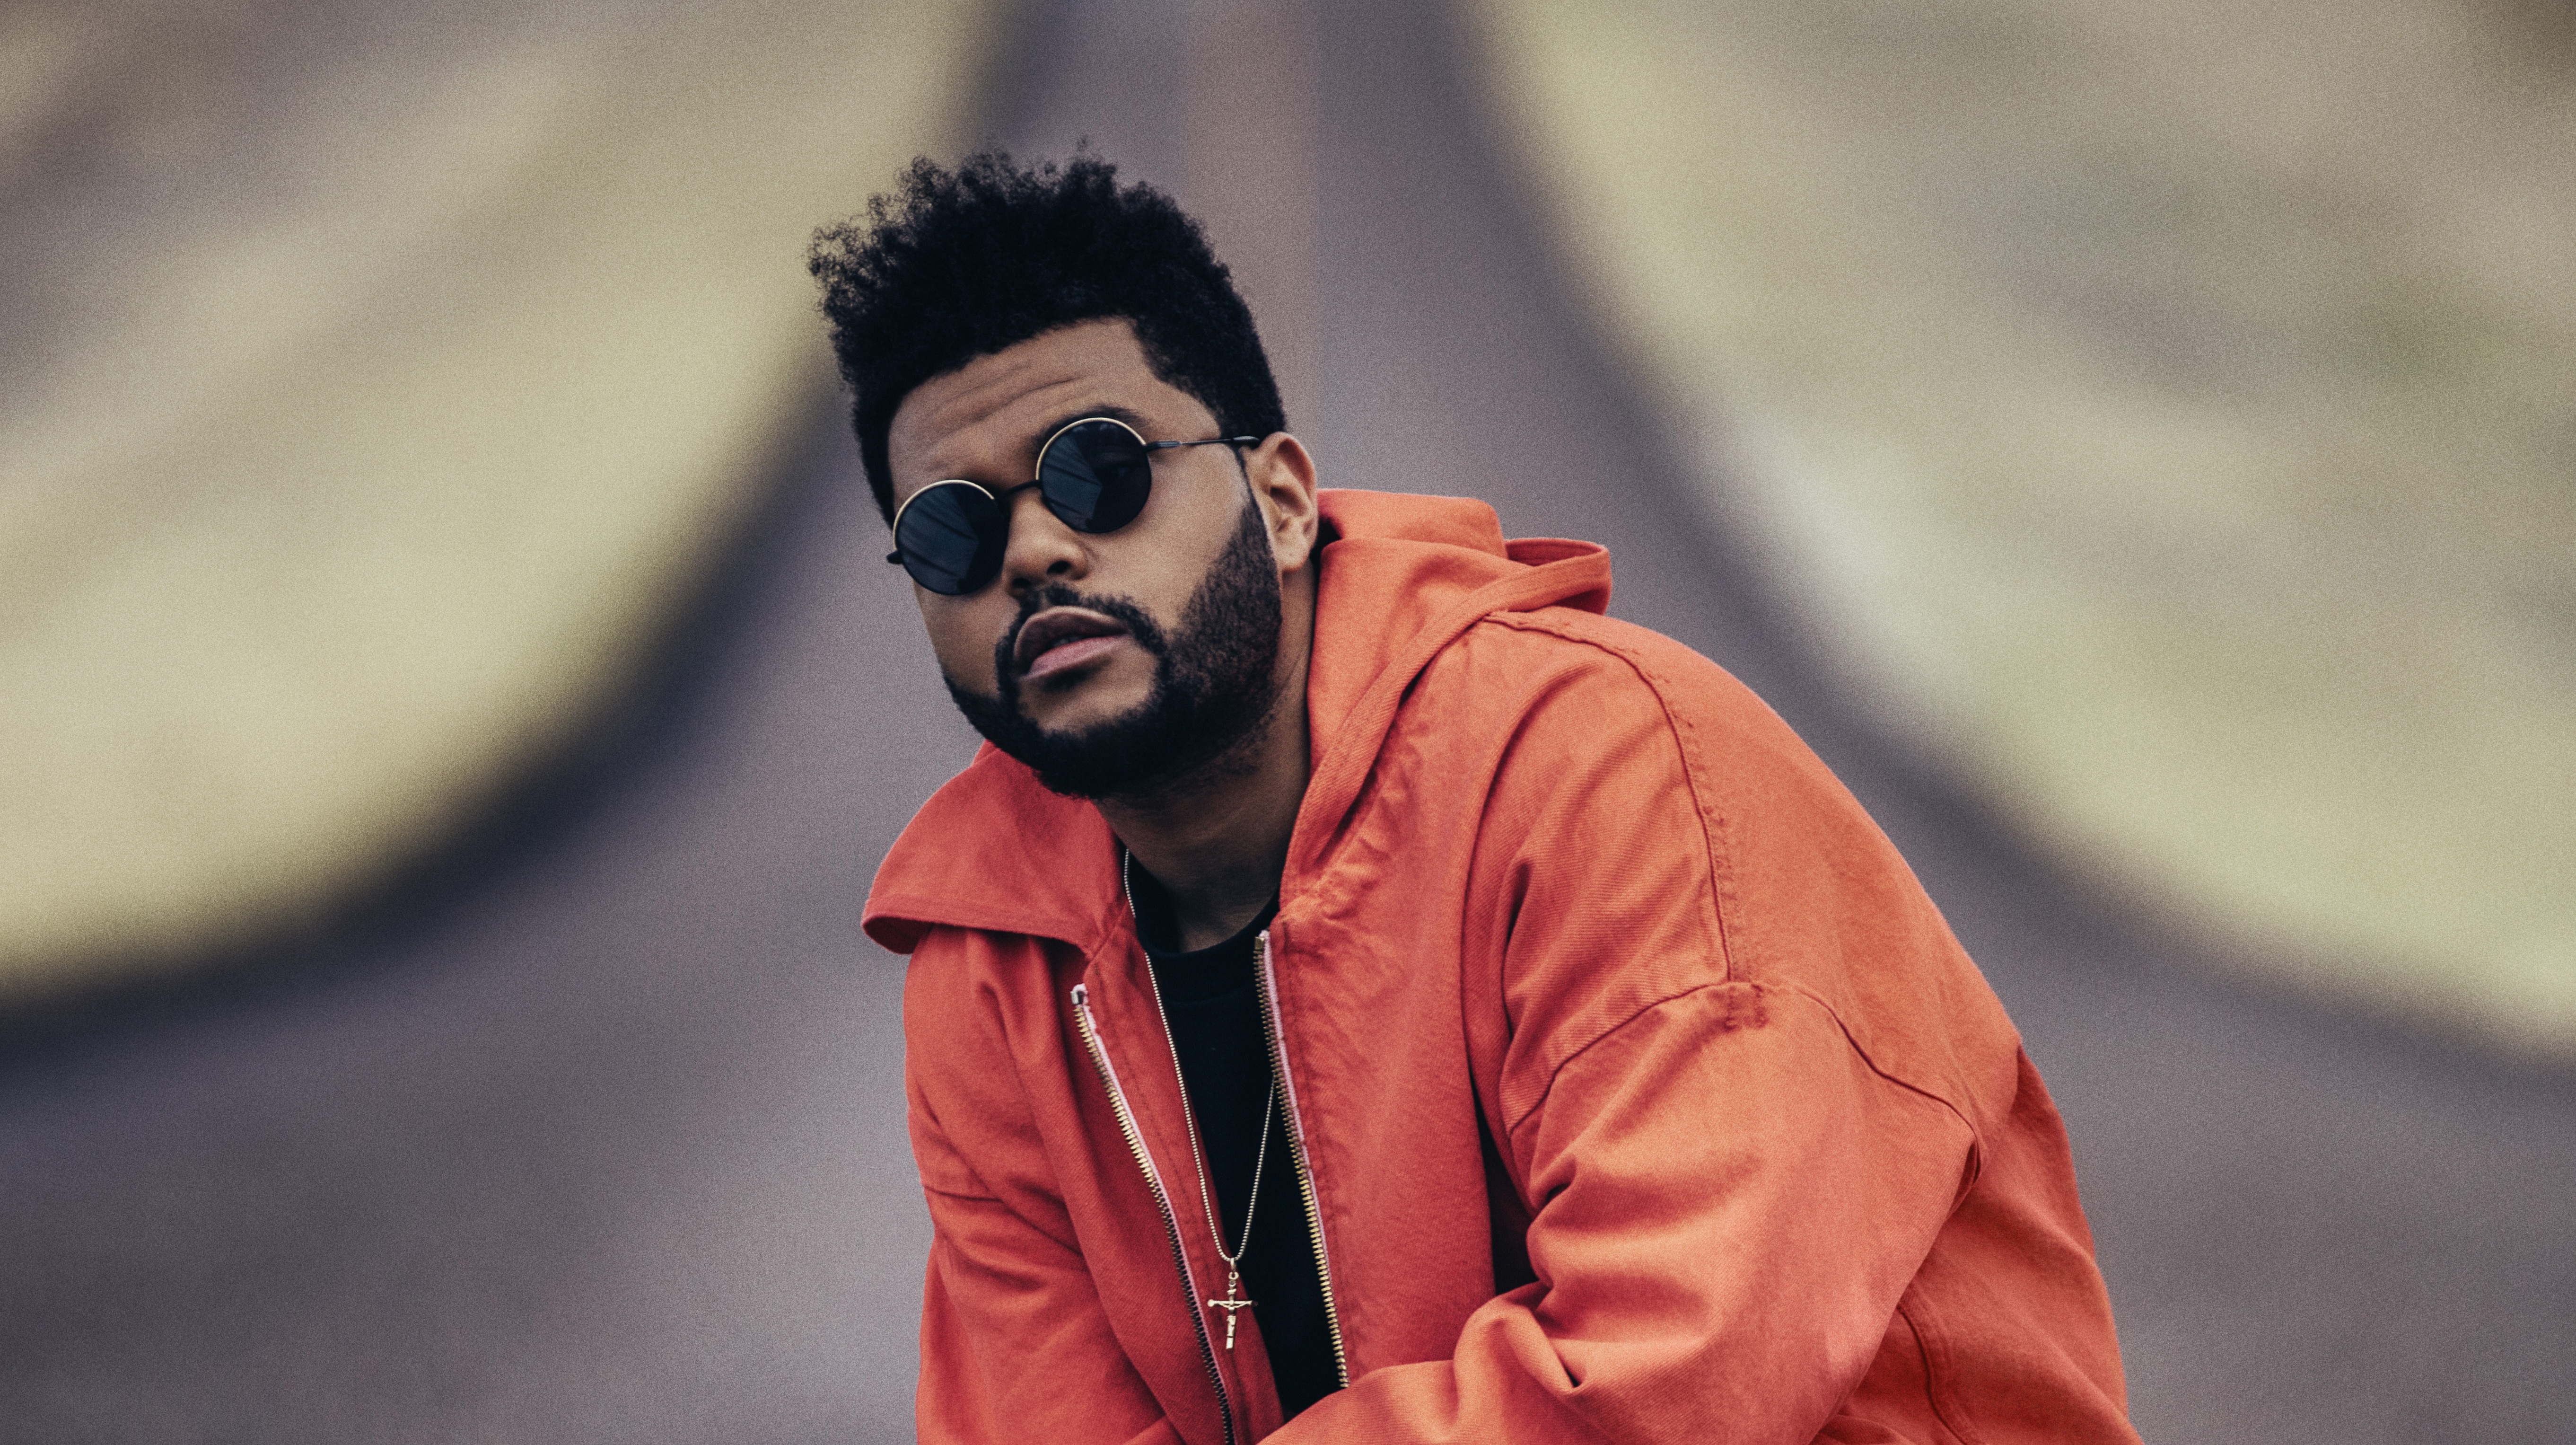 The Weeknd Puma X Xo 2018 Hd Music 4k Wallpapers Images Backgrounds Photos And Pictures